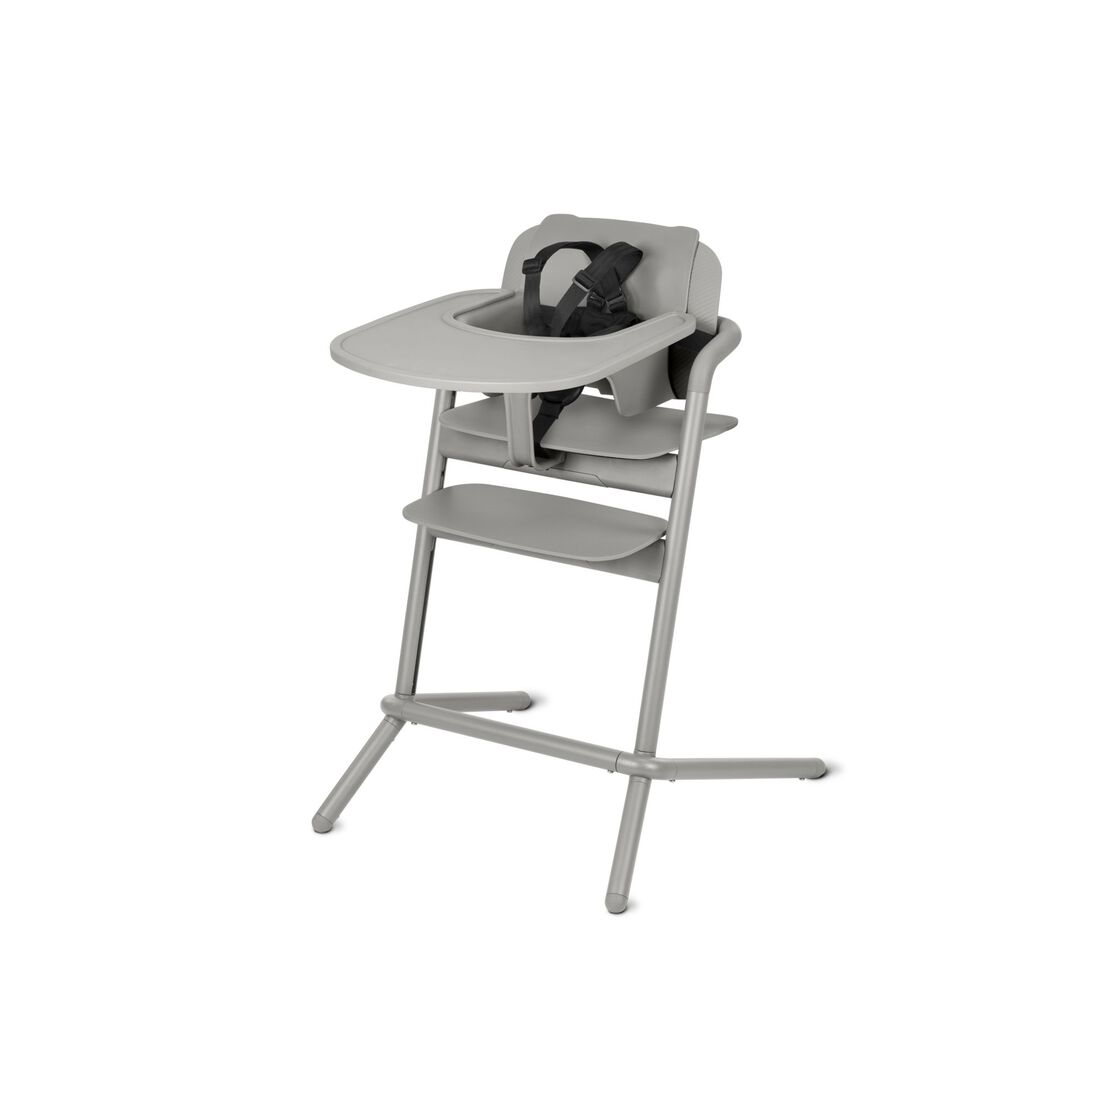 CYBEX Lemo Tray - Storm Grey in Storm Grey large Bild 1